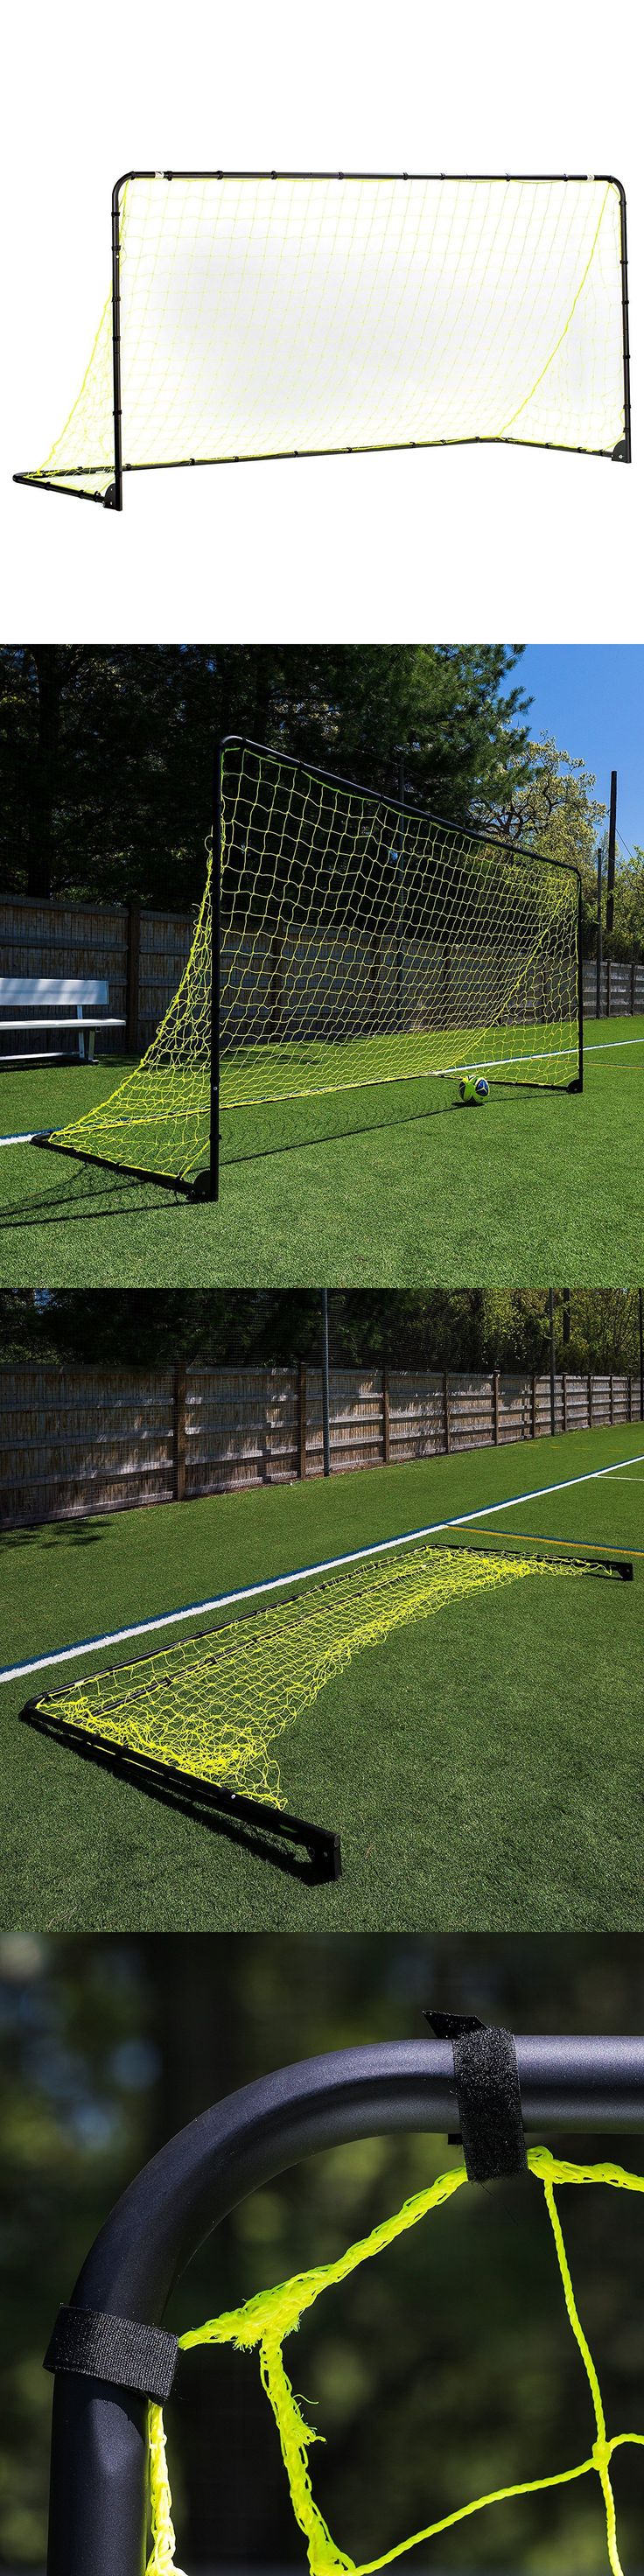 best 25 soccer goal size ideas on pinterest soccer ball nike